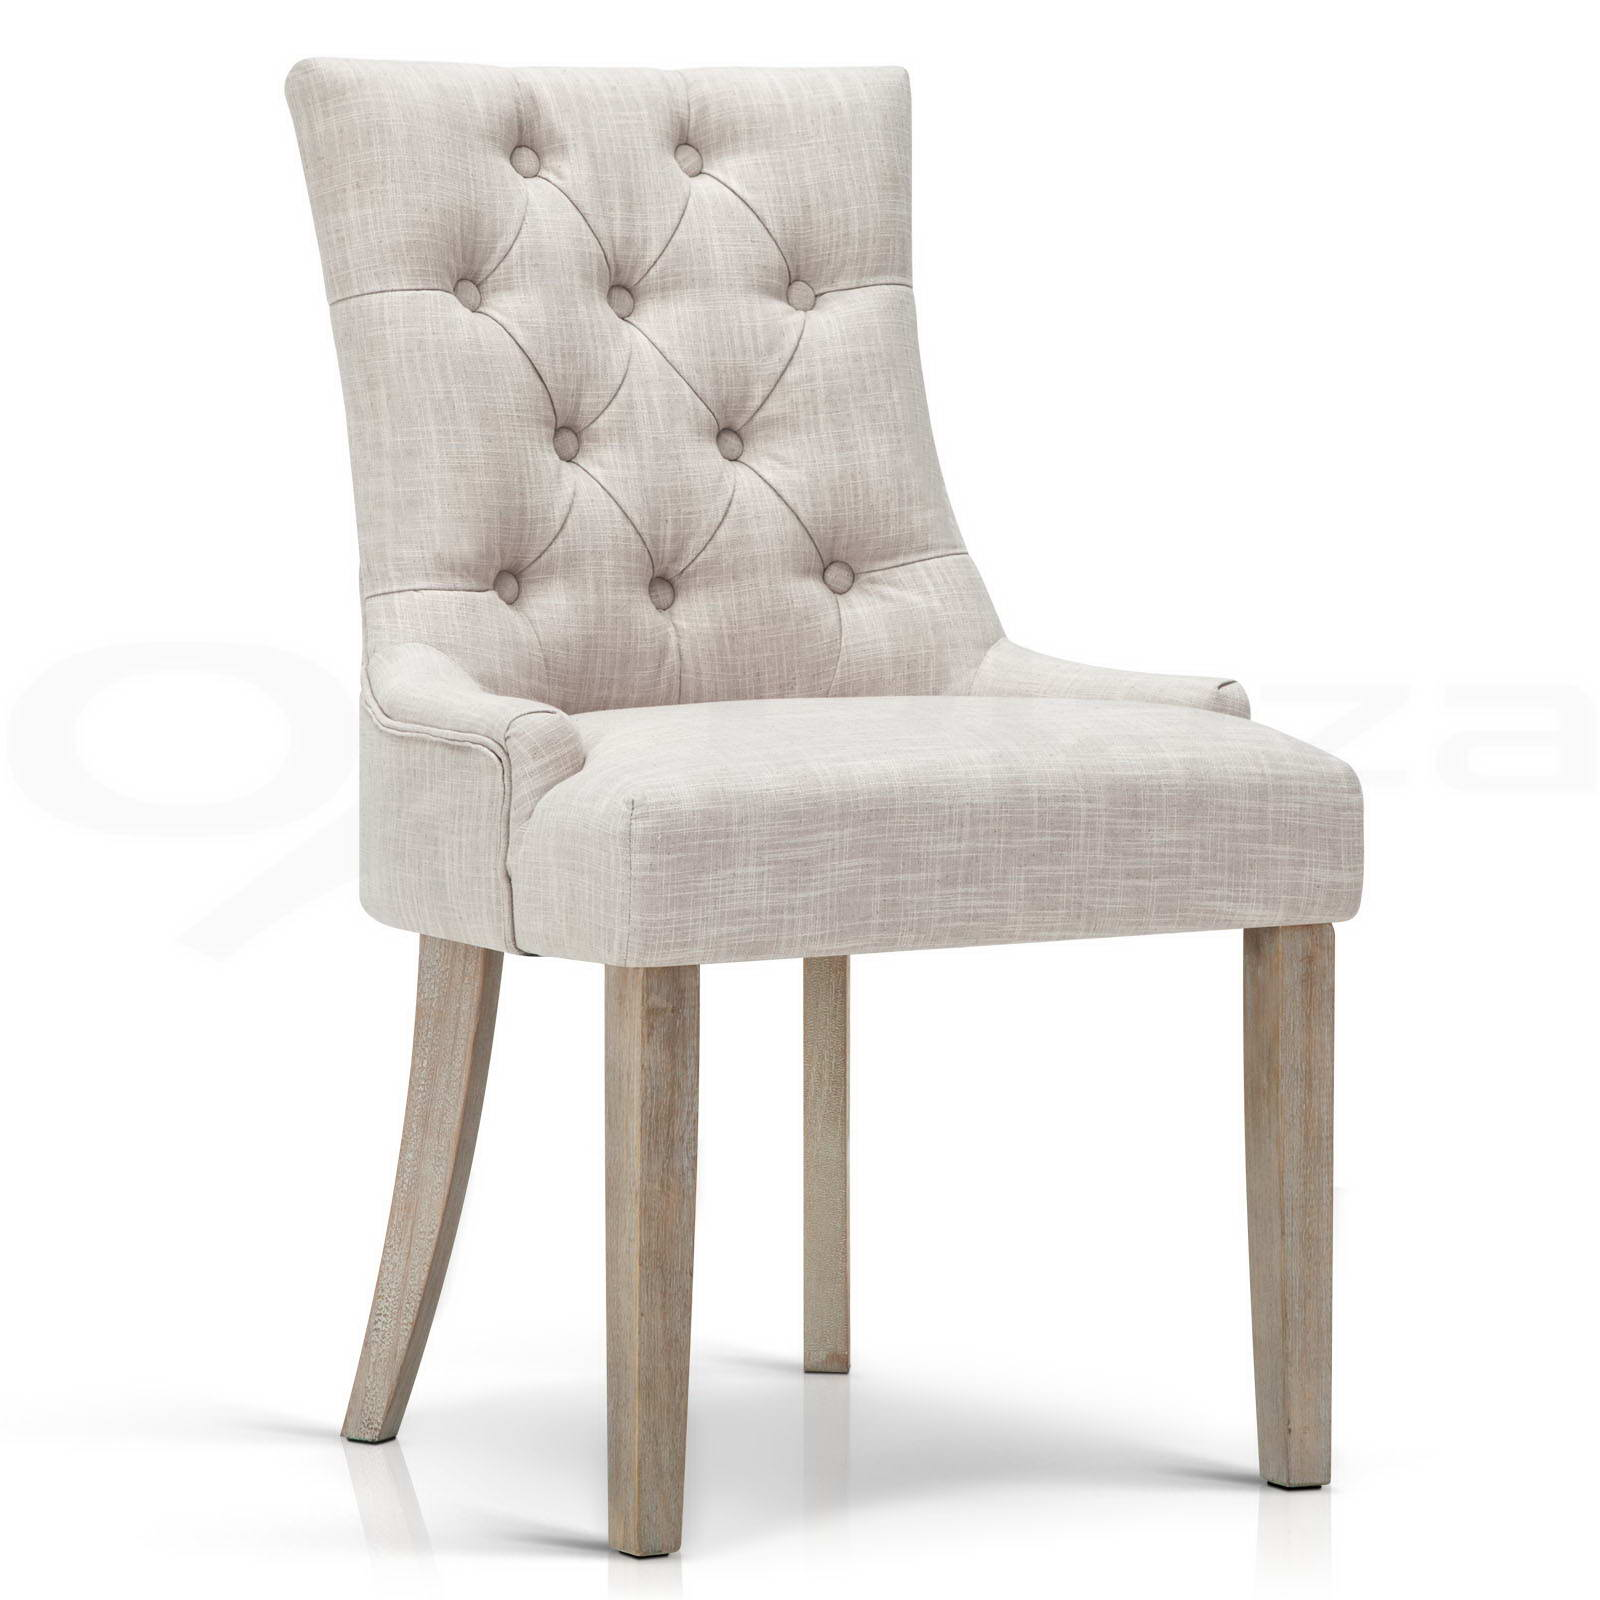 French Dining Chairs Cayes Dining Chair Linen Fabric French Provincial Wood